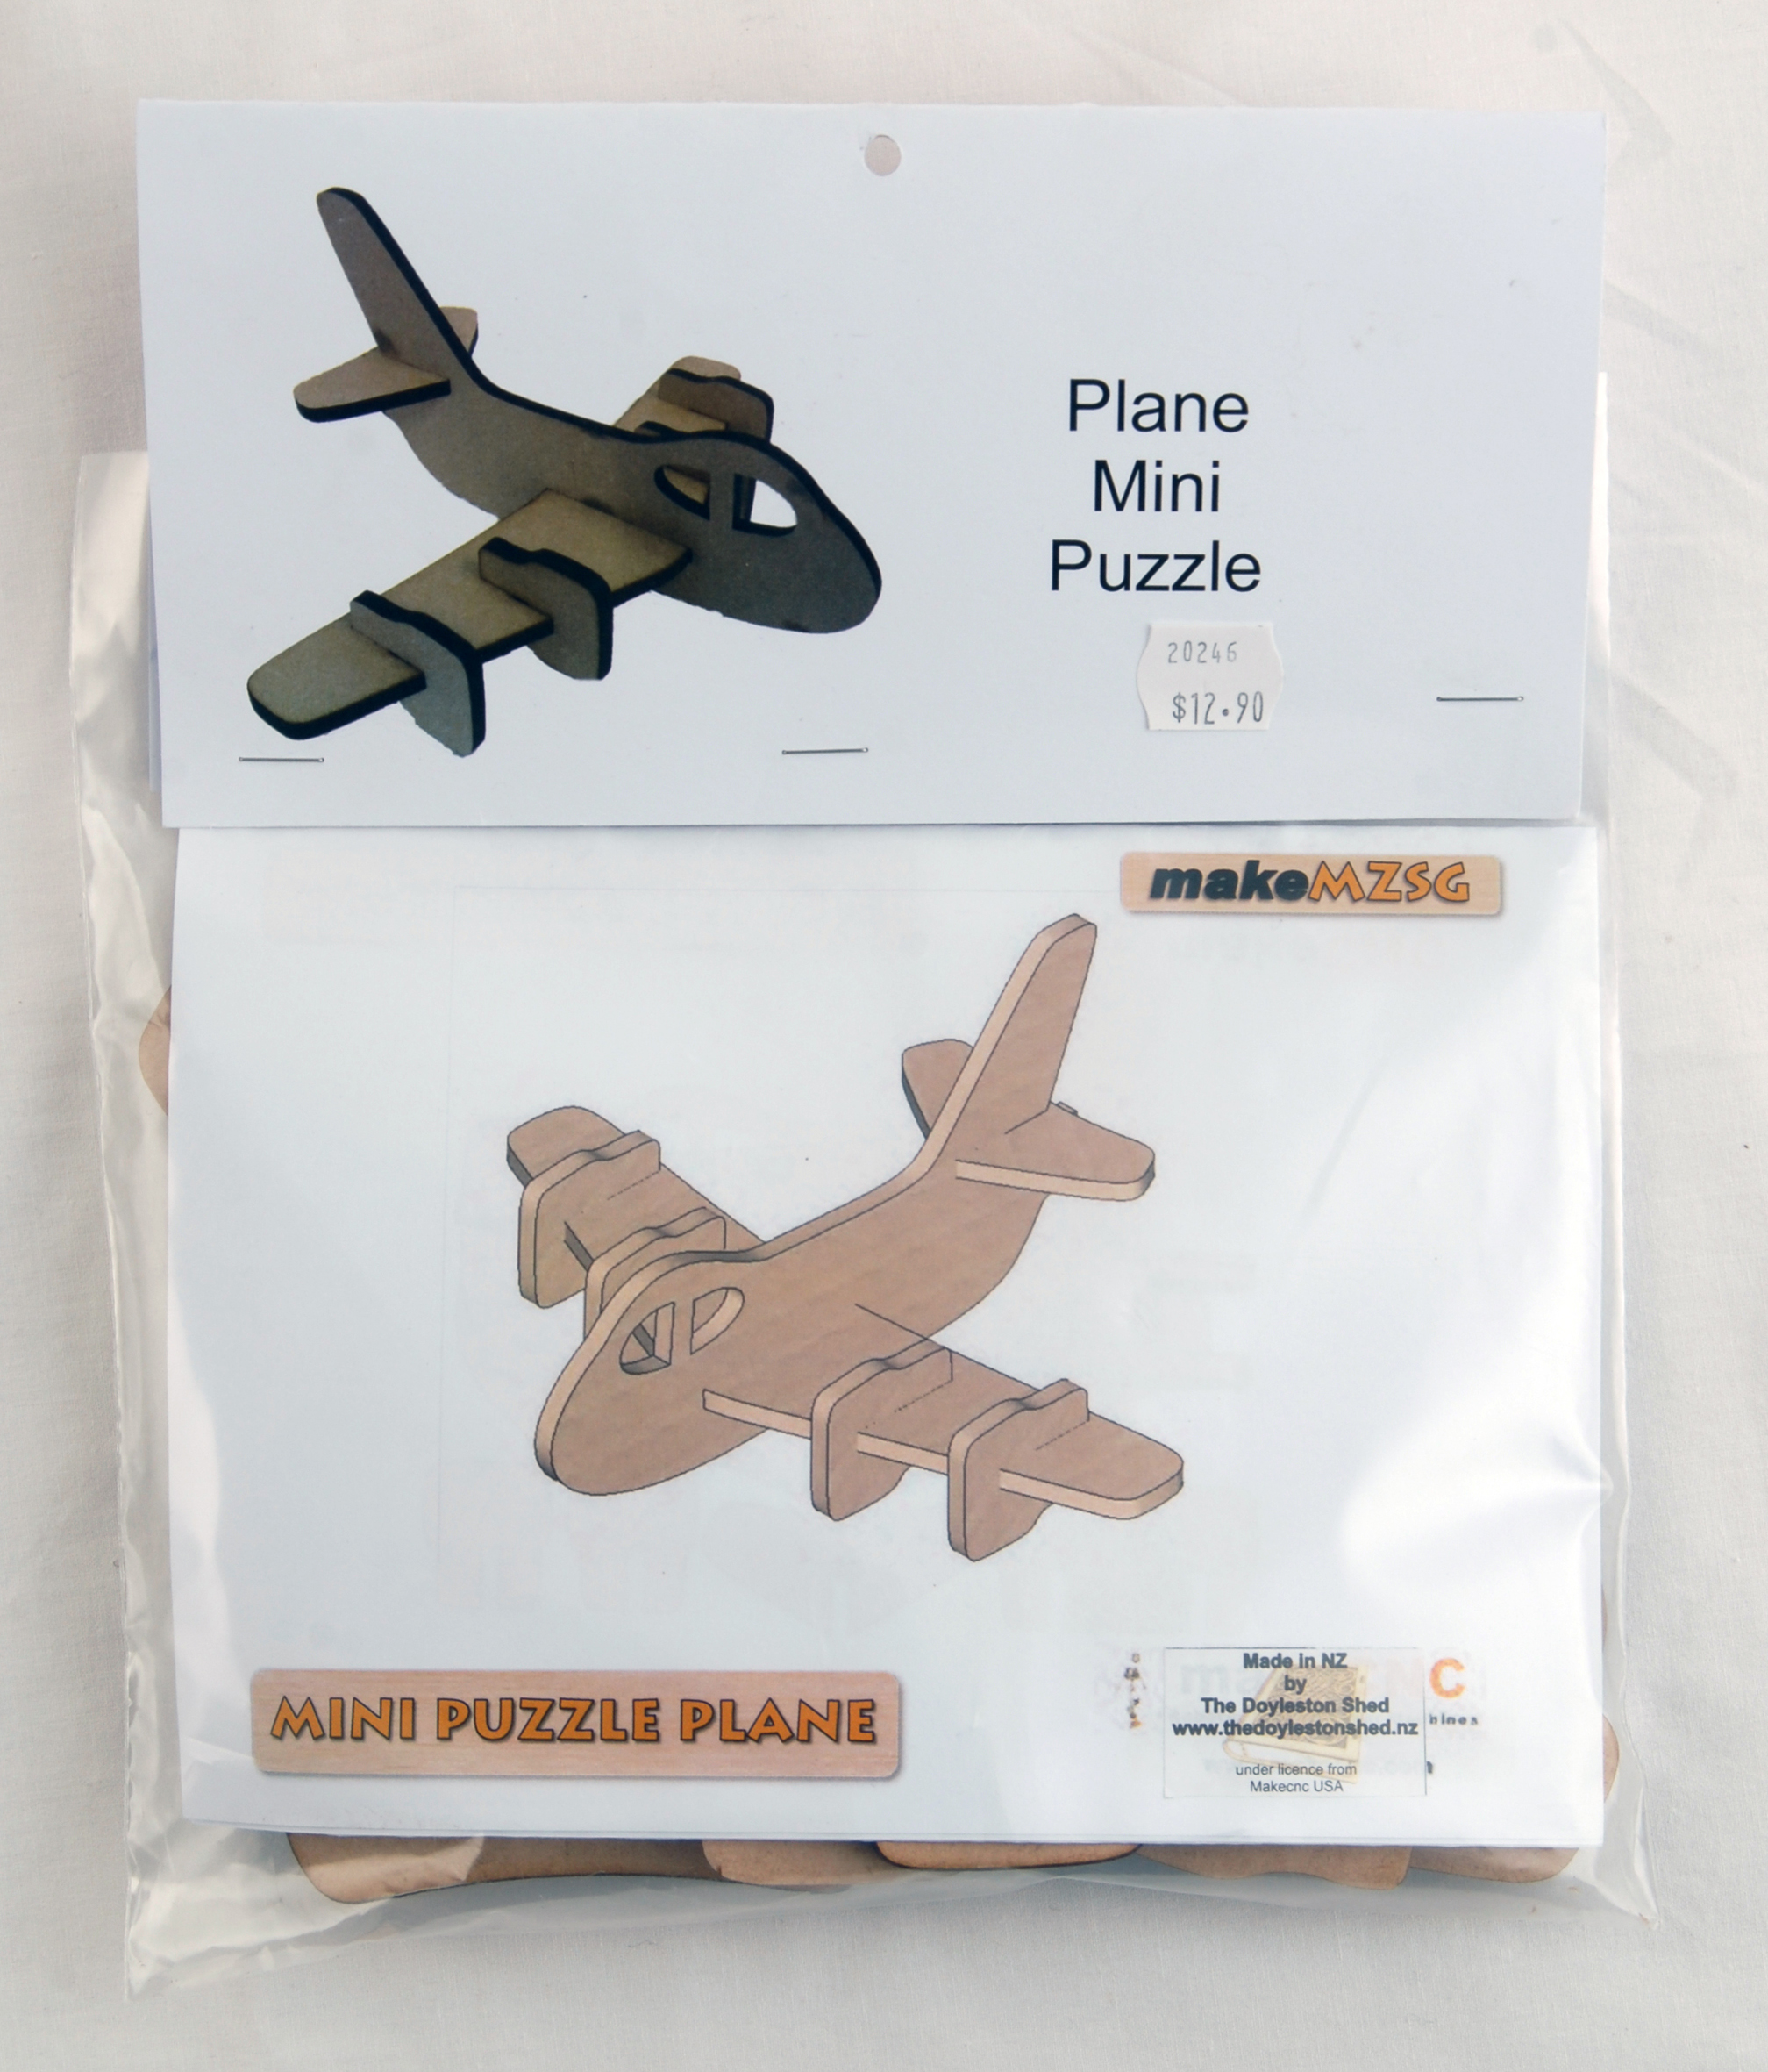 Wood Model Aircraft Kitset - Mini Puzzle Plane